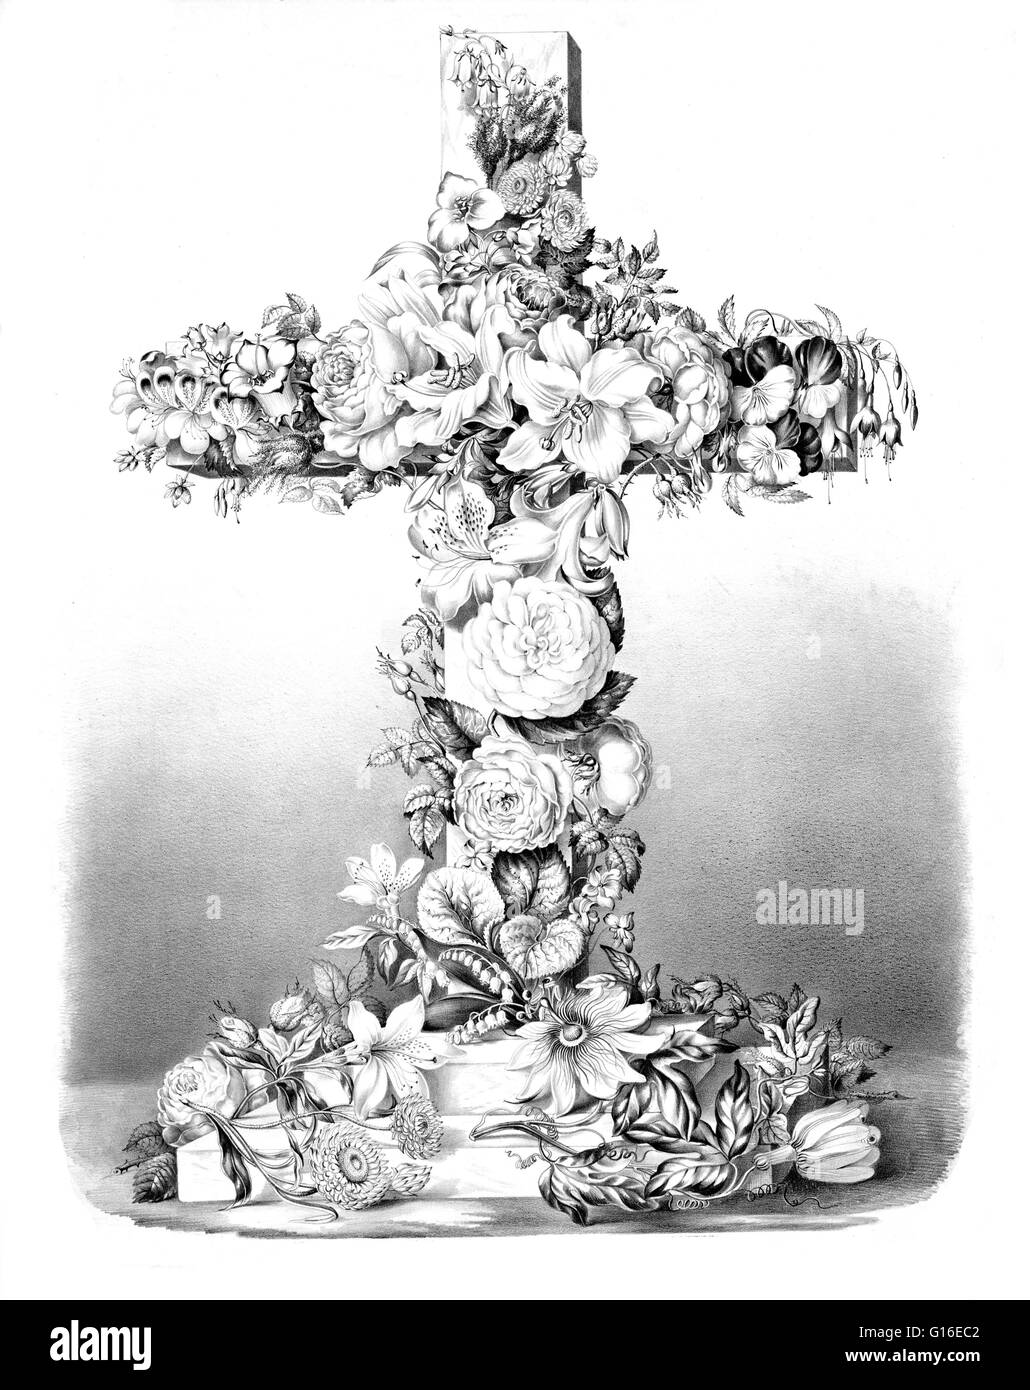 entitled the easter cross the word cross comes ultimately from the word cross comes ultimately from latin crux